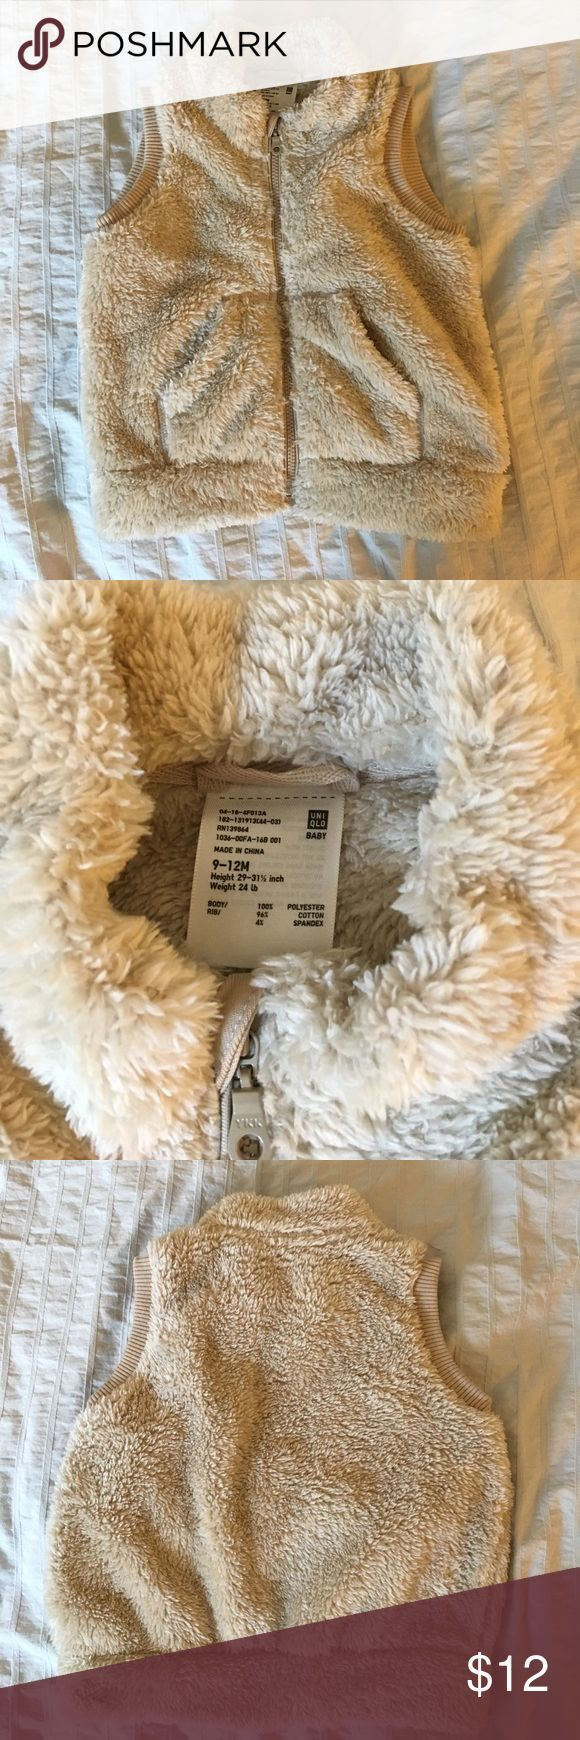 """Uniqlo baby cream furry vest with pockets Uniqlo baby cream or light tan zip front vest with pockets. 9-12 month size (29-31.5"""", 24 lb). Worn twice and in excellent condition. Uniqlo Jackets & Coats Vests"""